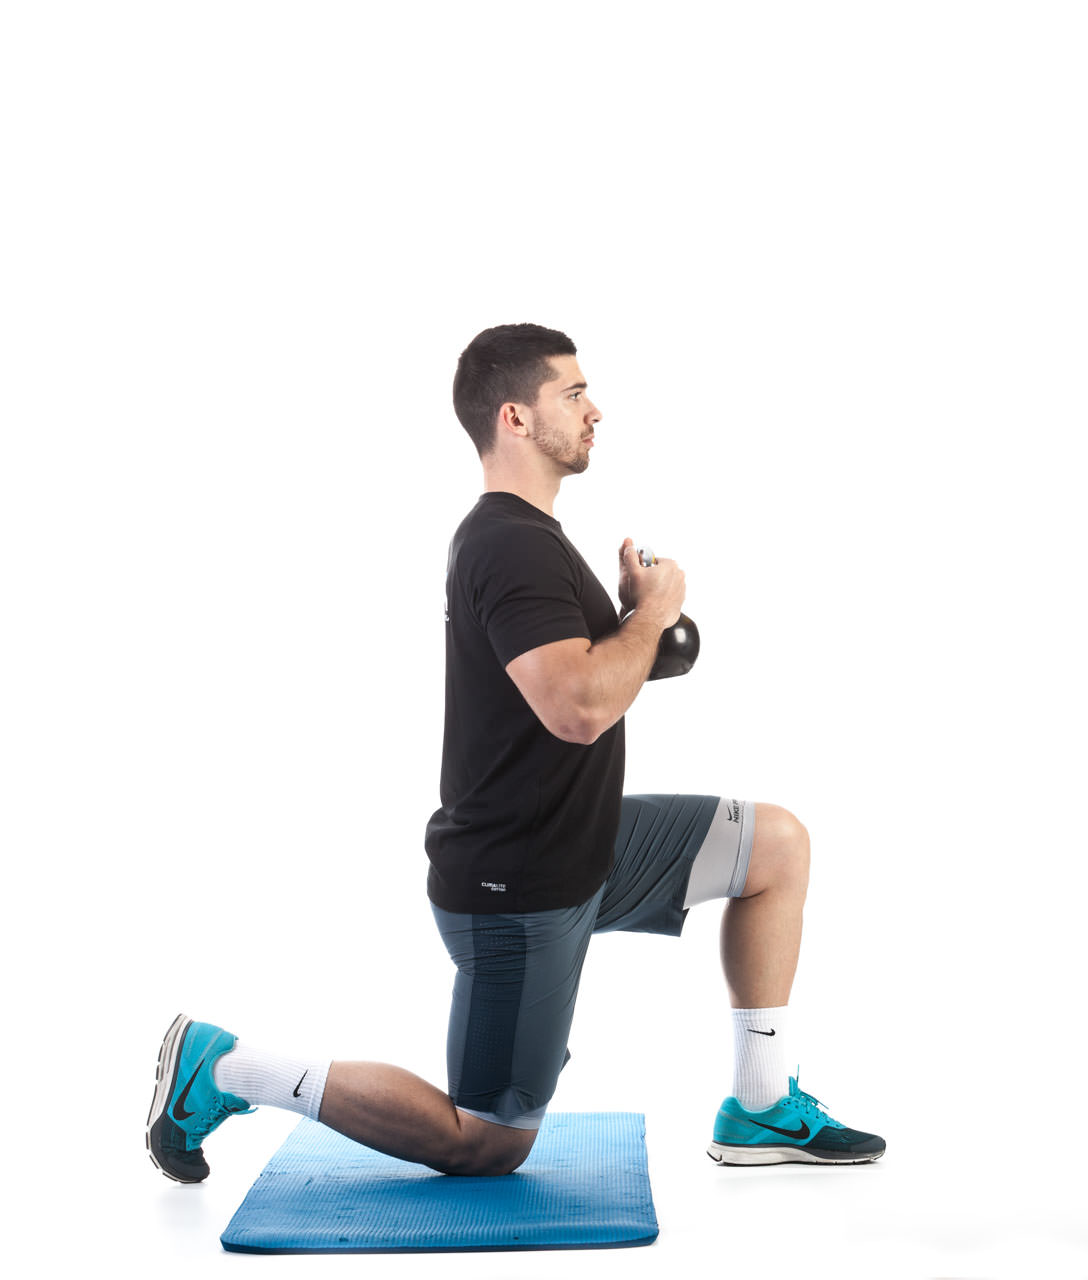 Kettlebell Kneeling to Stand-Up frame #4